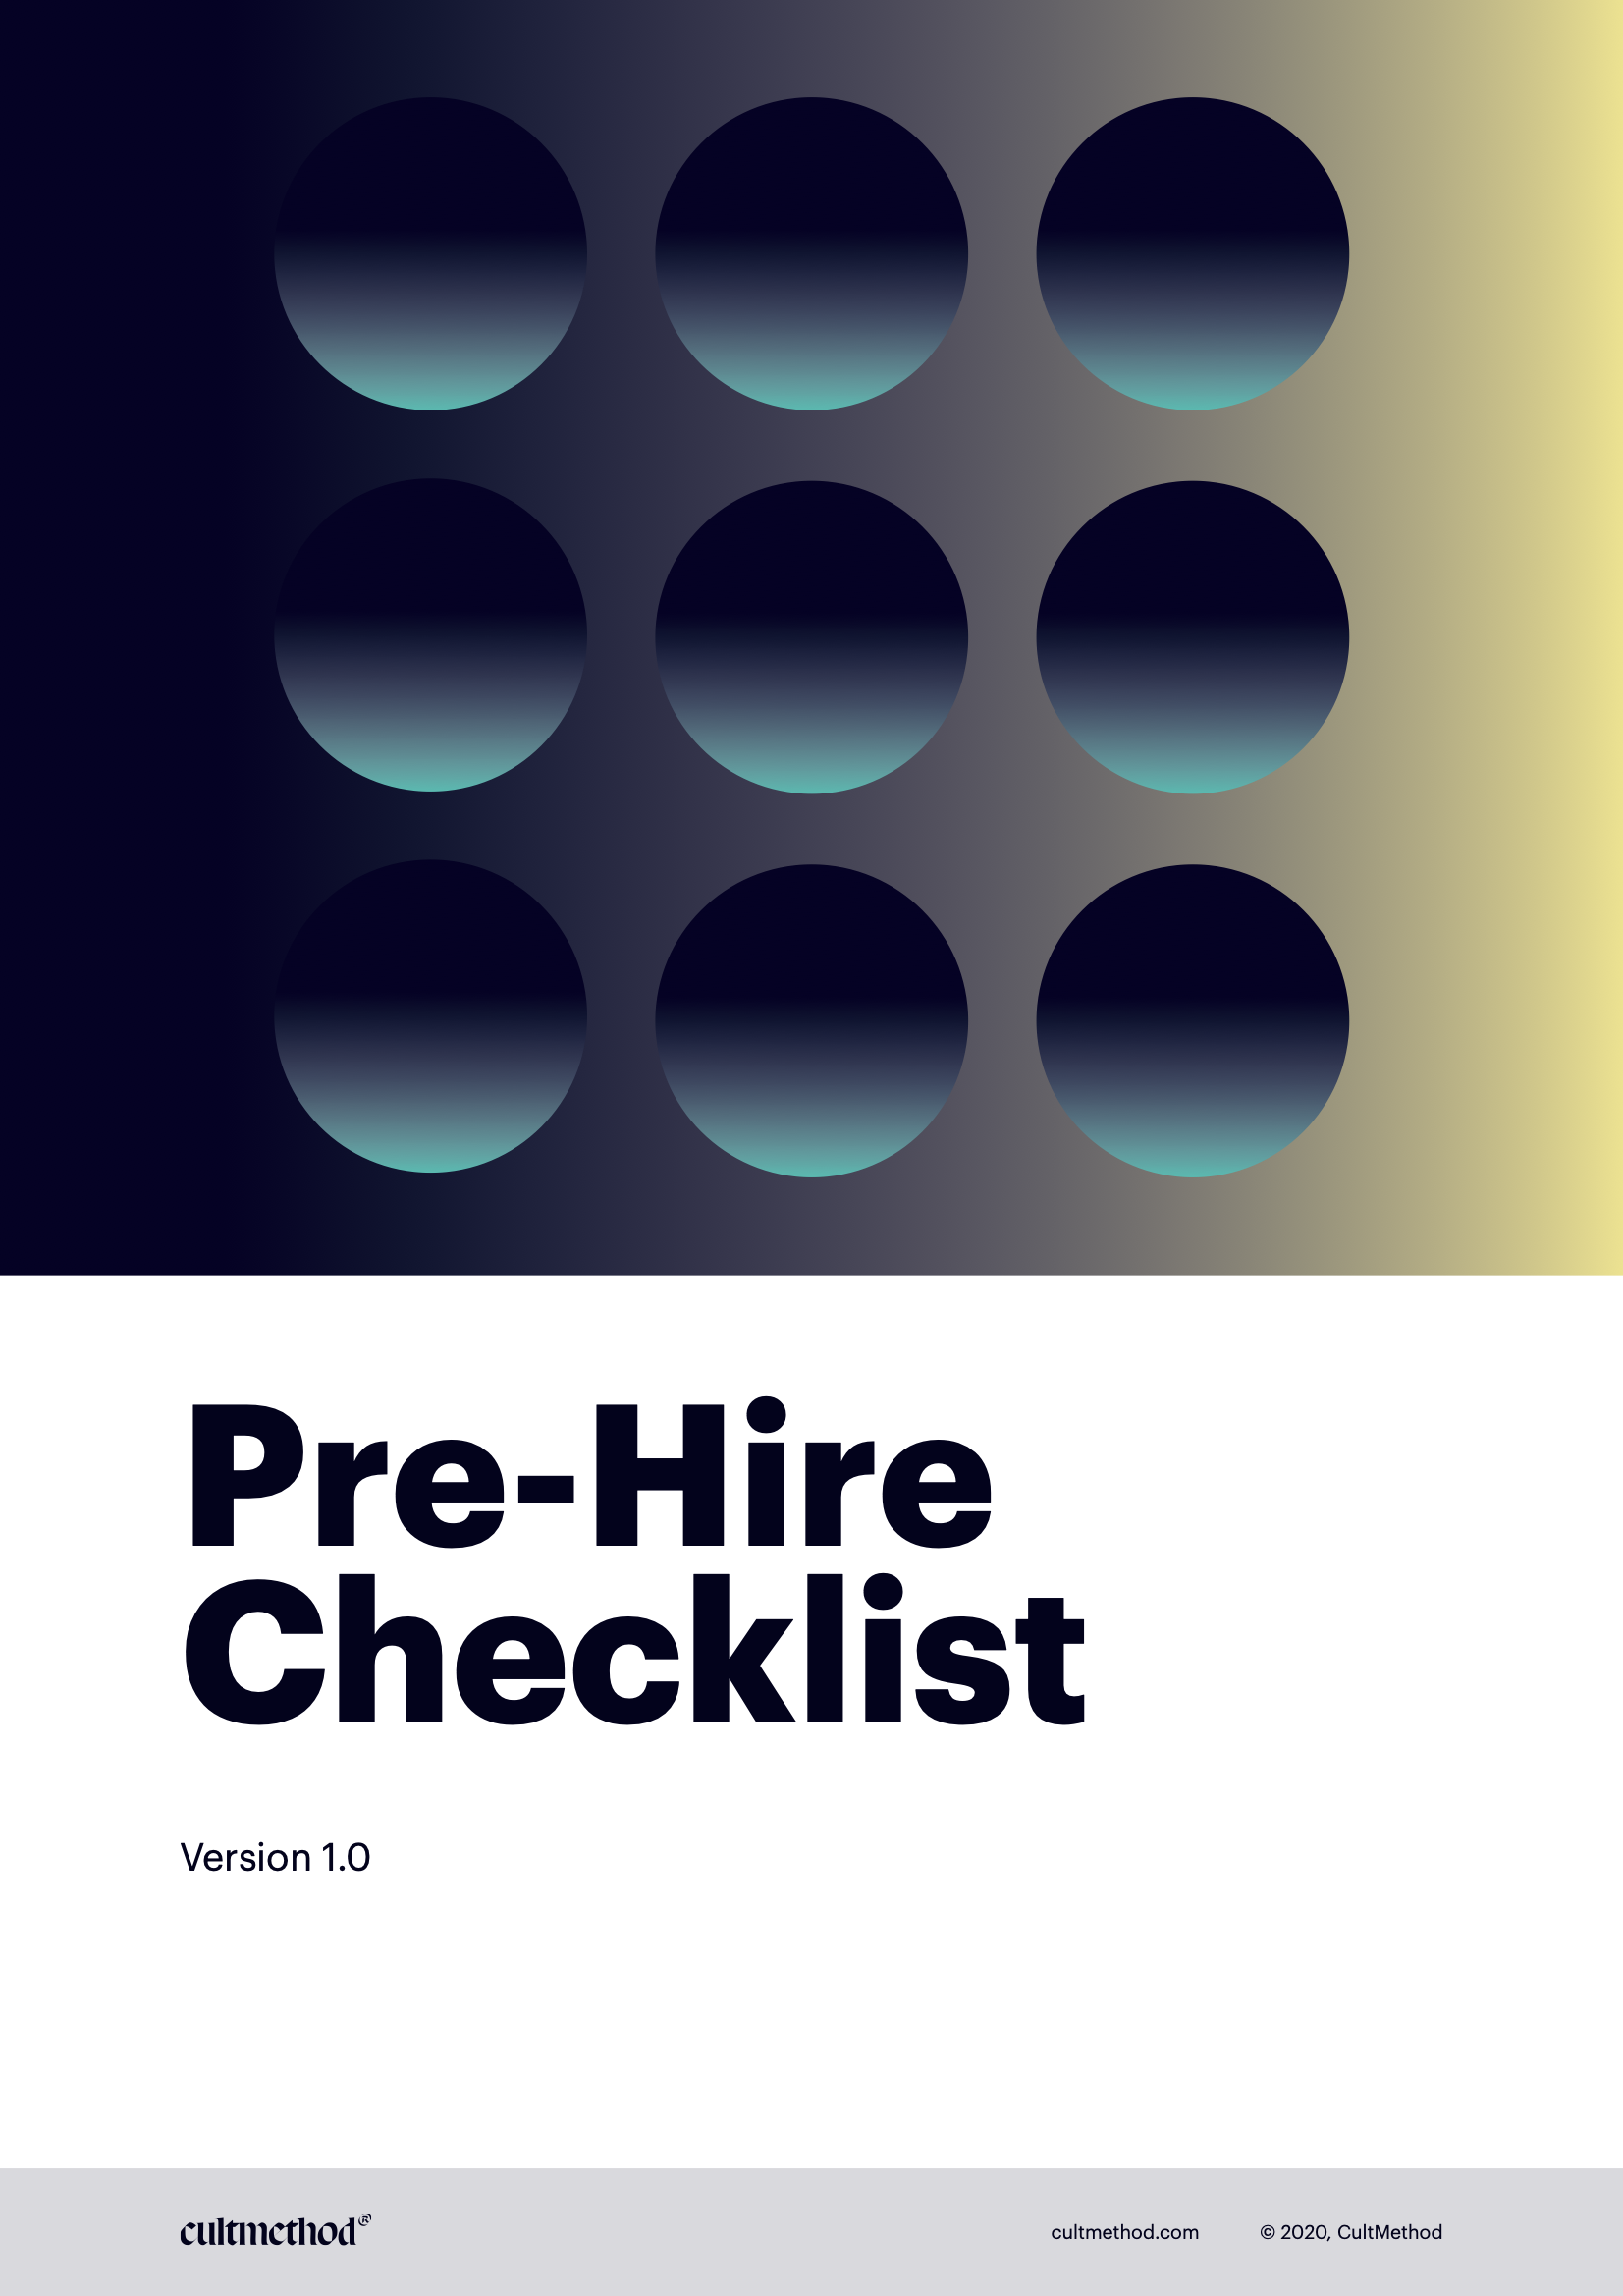 Cover page of Pre-Hire Checklist